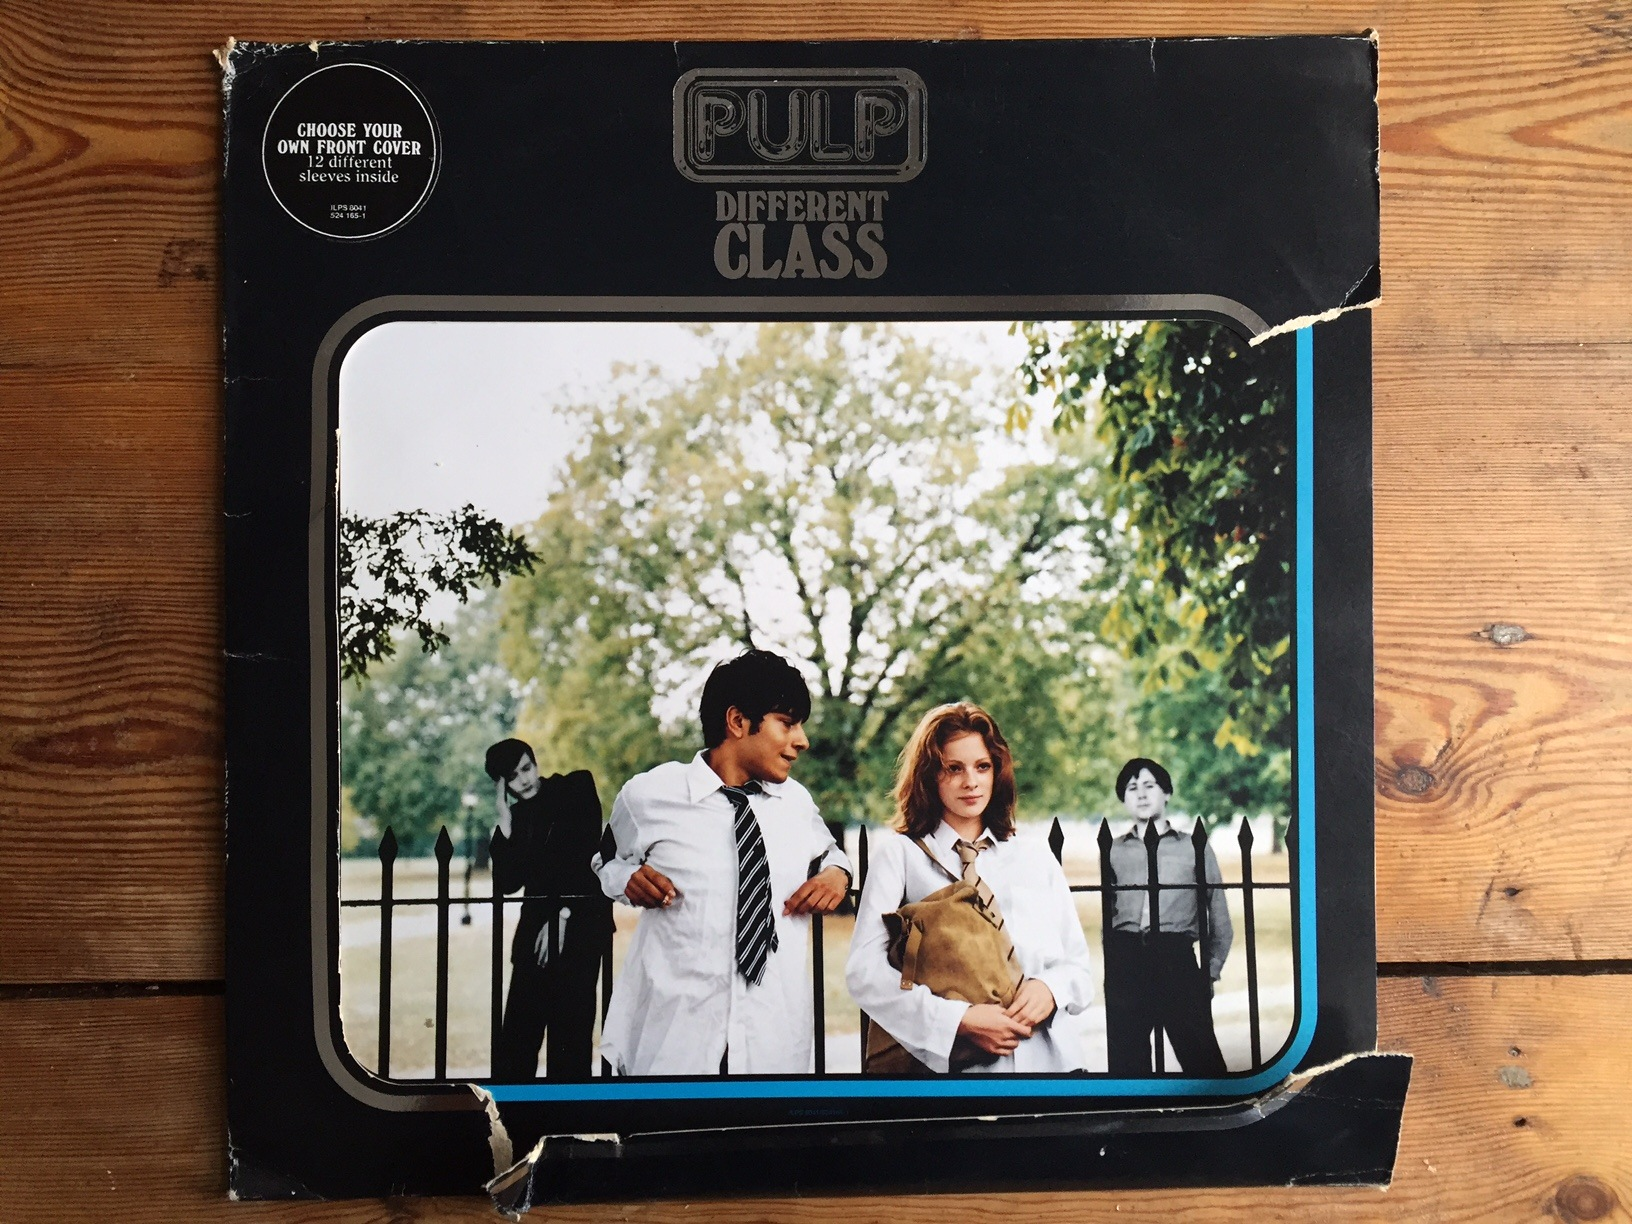 Editor Stephen Emms' original 1995 vinyl release of Different Class. Note how thoroughly worn it is. Photo: SE